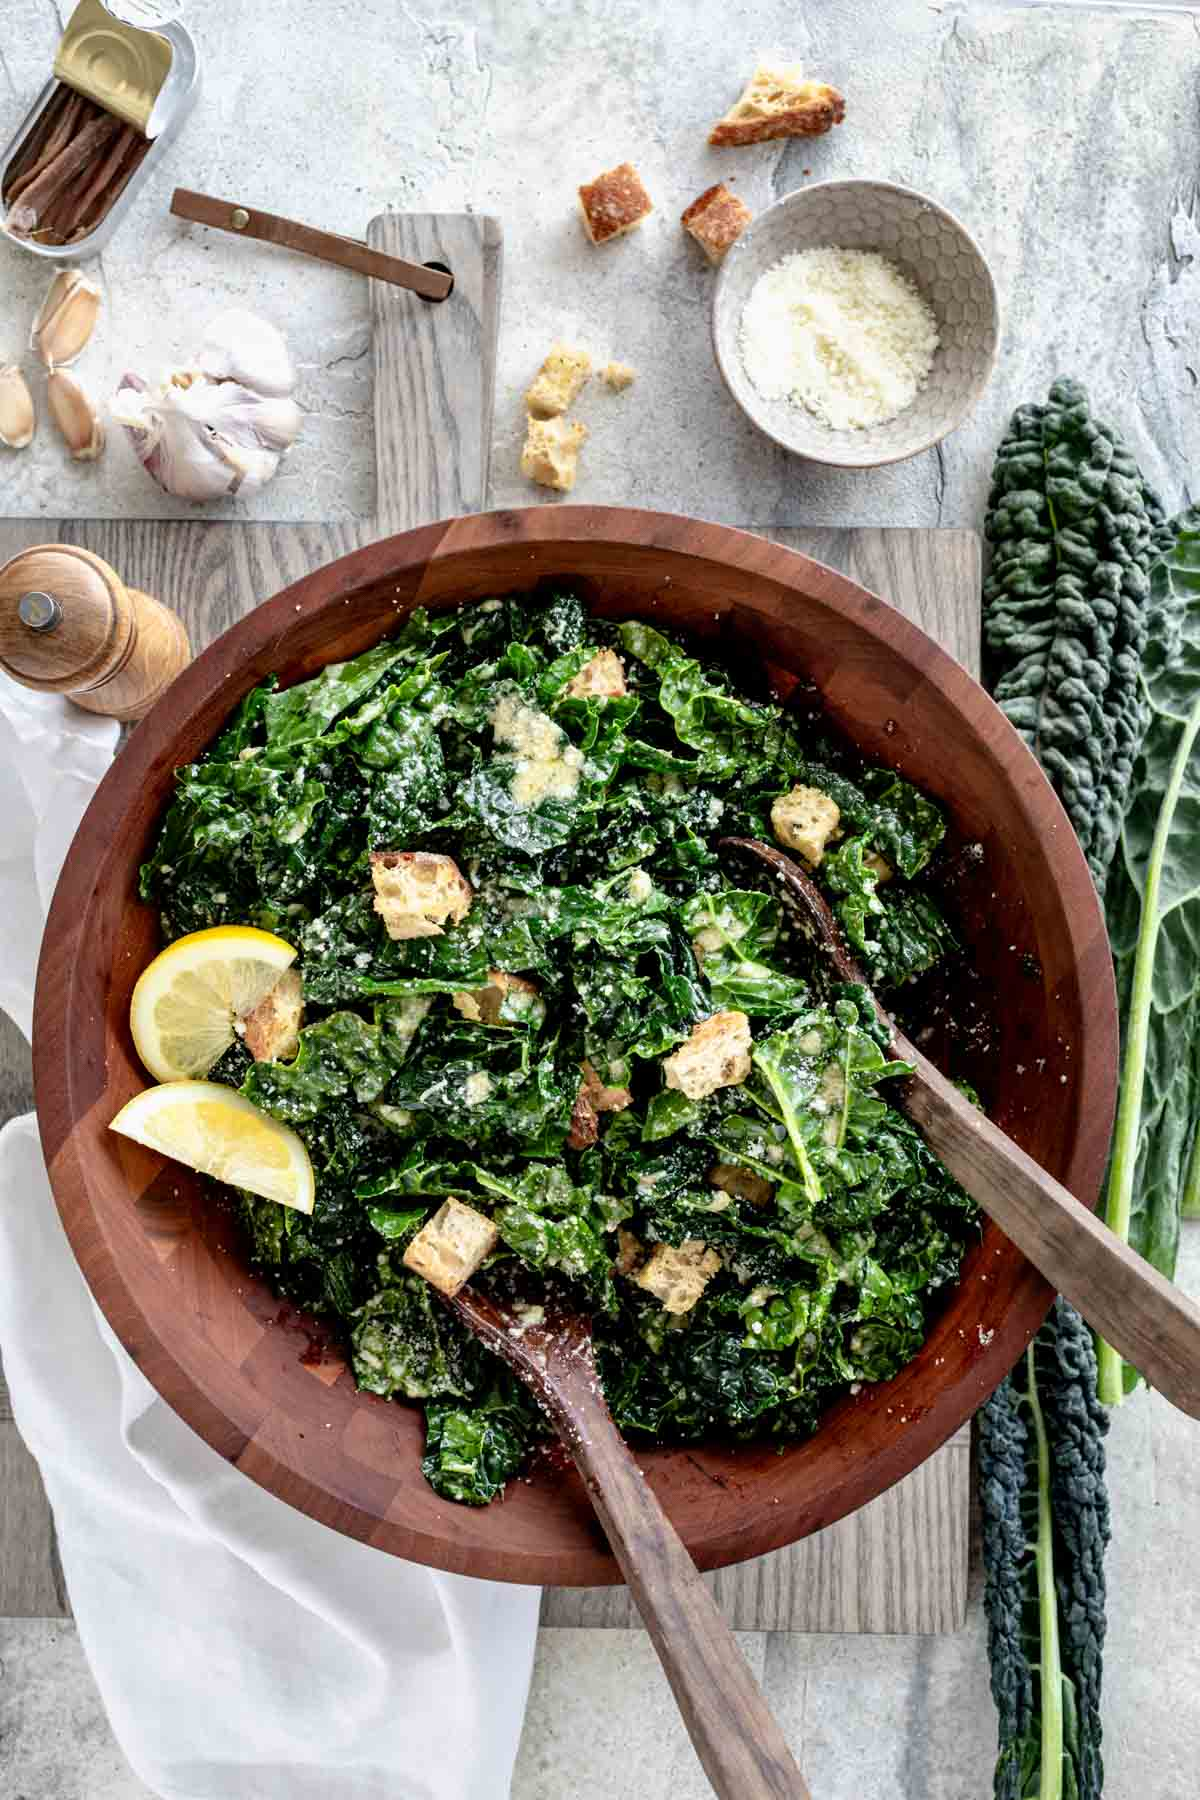 tuscan kale salad in a wooden bowl with salad spoons